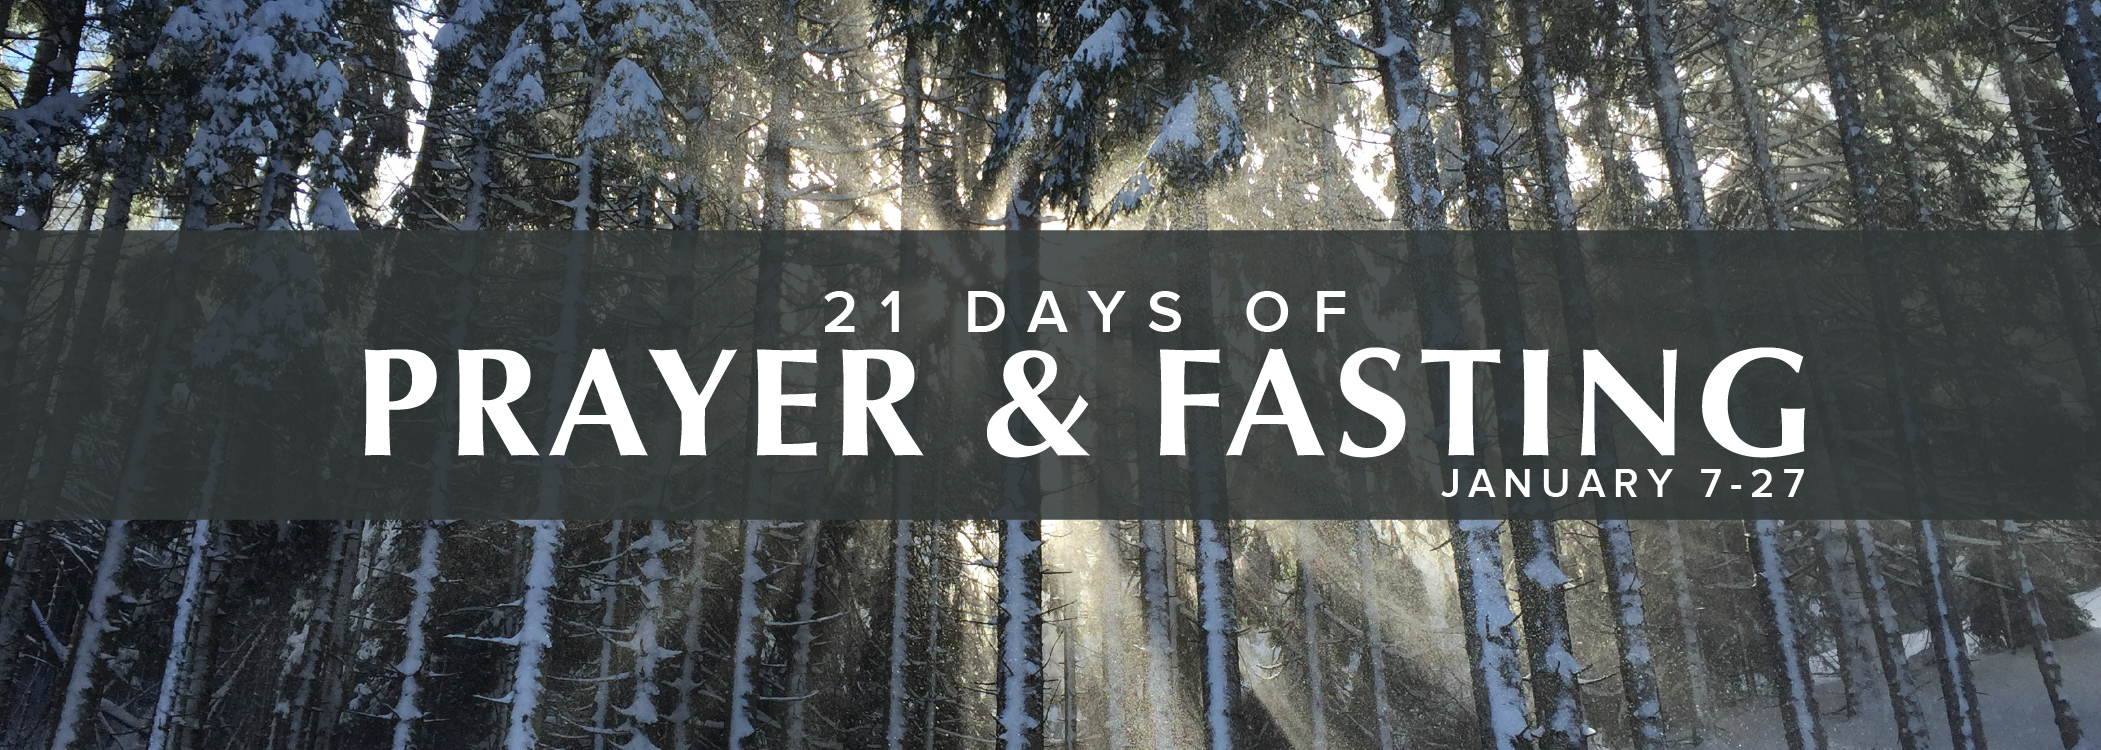 21 Days of Prayer & Fasting BANNER-04.png